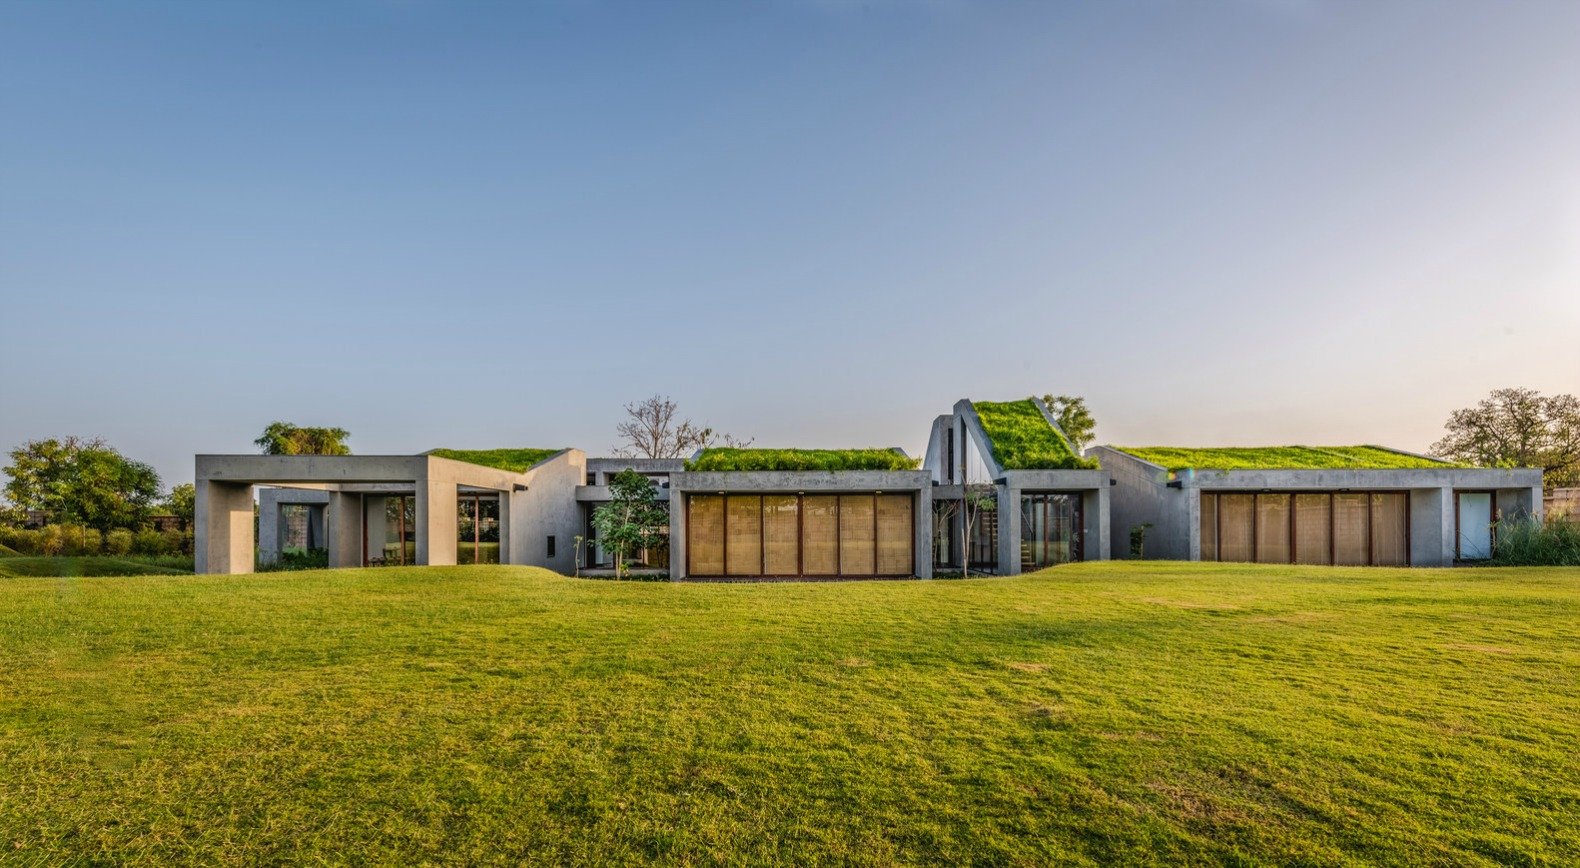 Stunning home in India blends into the earth with segmented green roofs